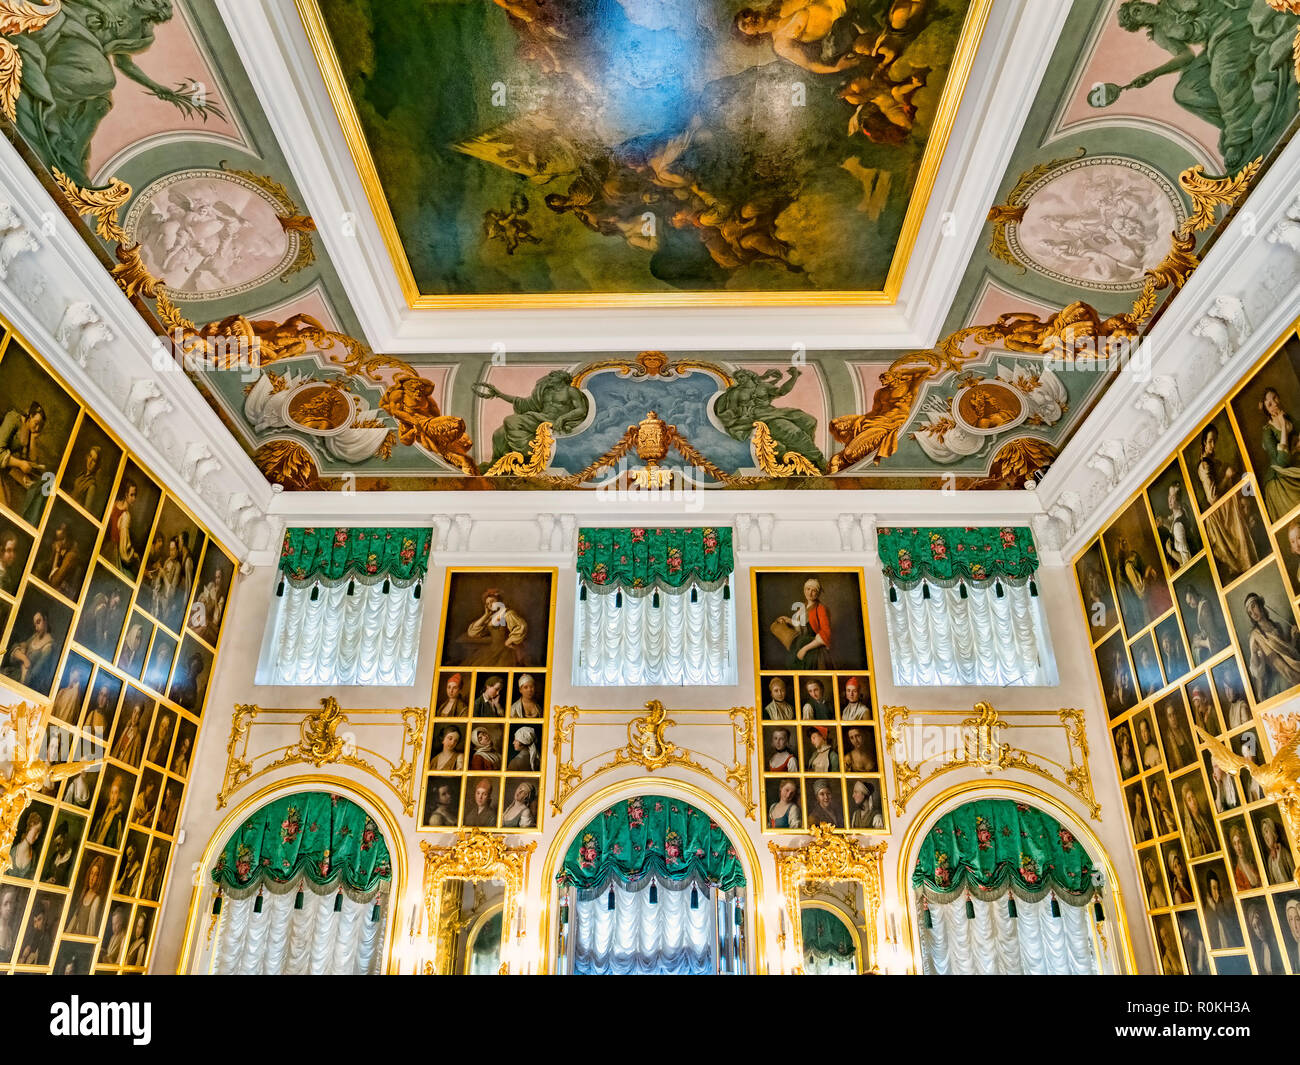 18 September 2018: St Petersburg, Russia - The Portrait Hall in Peterhof Grand Palace. Stock Photo